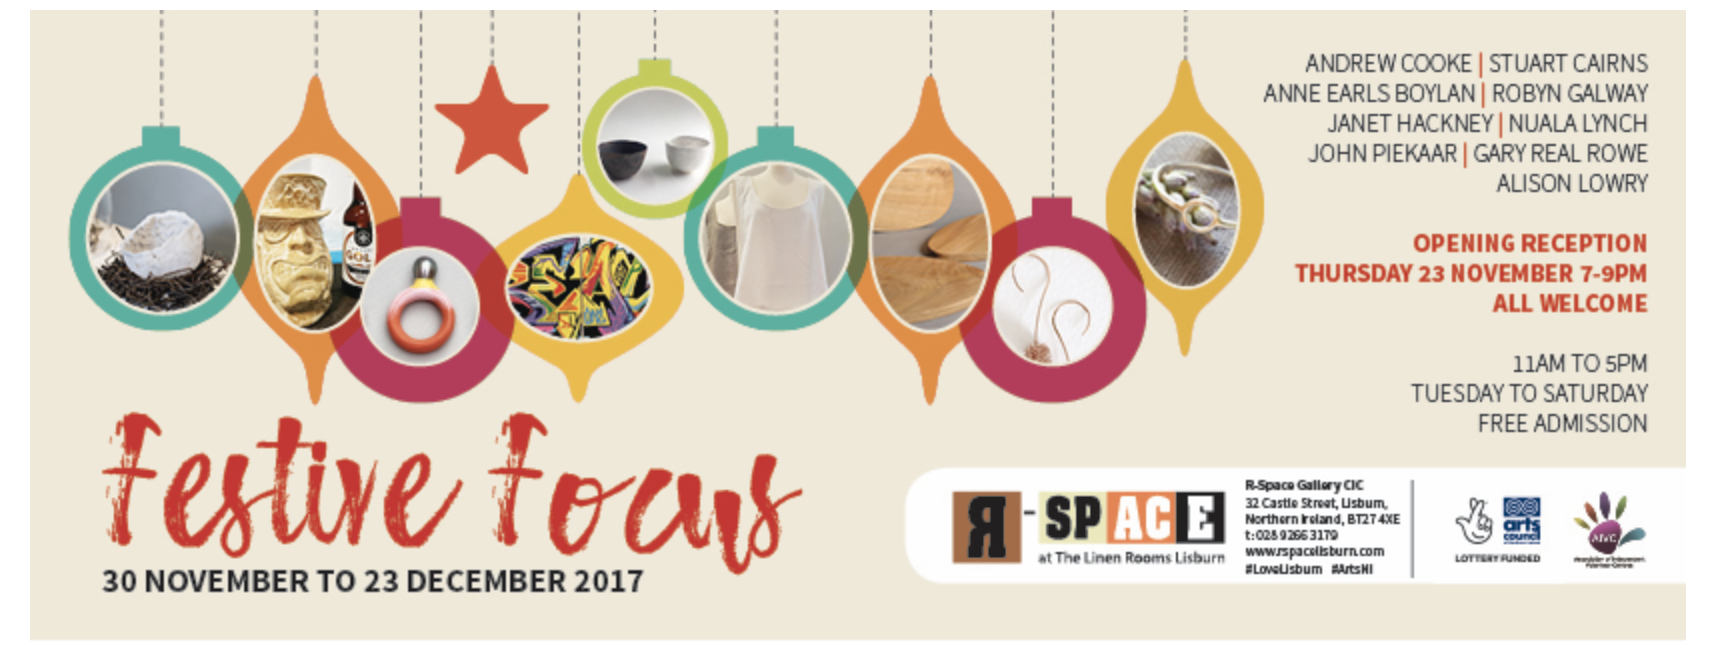 New Gold Berry earrings, along with a large selection of  nua  jewellery,can be found at the beautiful  Festive Focus  at  R-Space Gallery,  Castle Street, Lisburn. A wonderful selection of design-led,hand-crafted gifts.